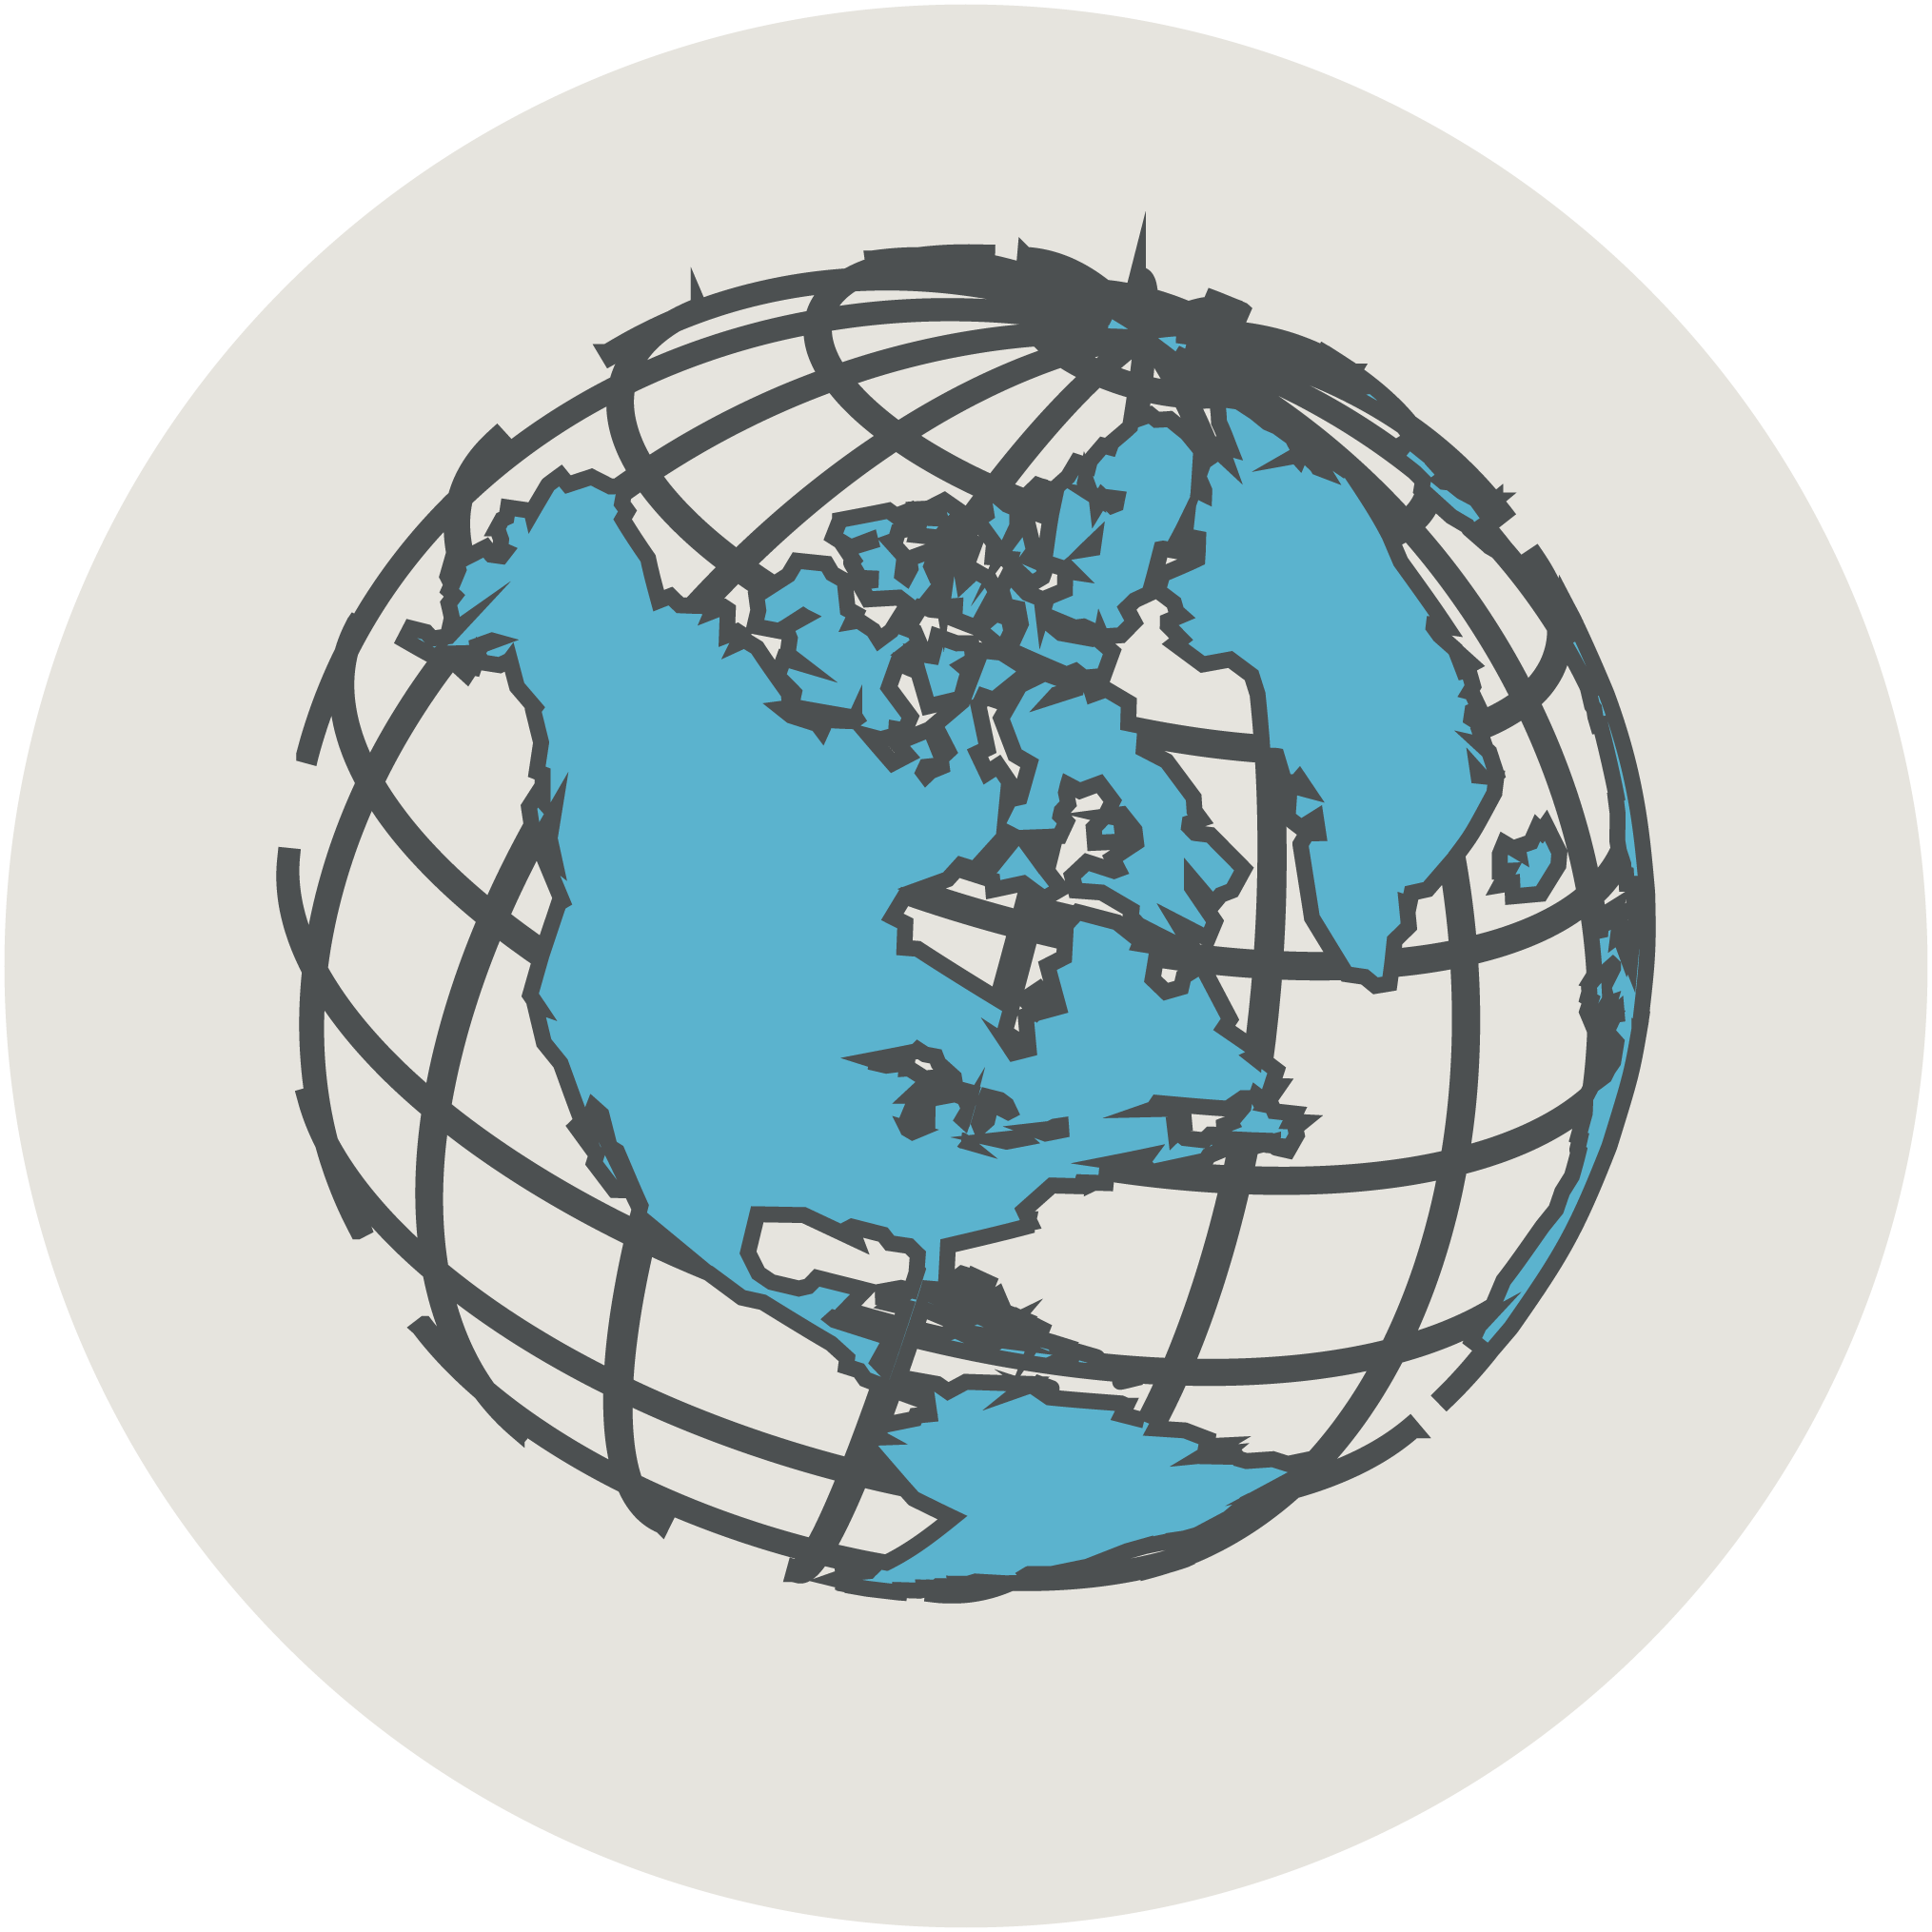 International solidarity icon